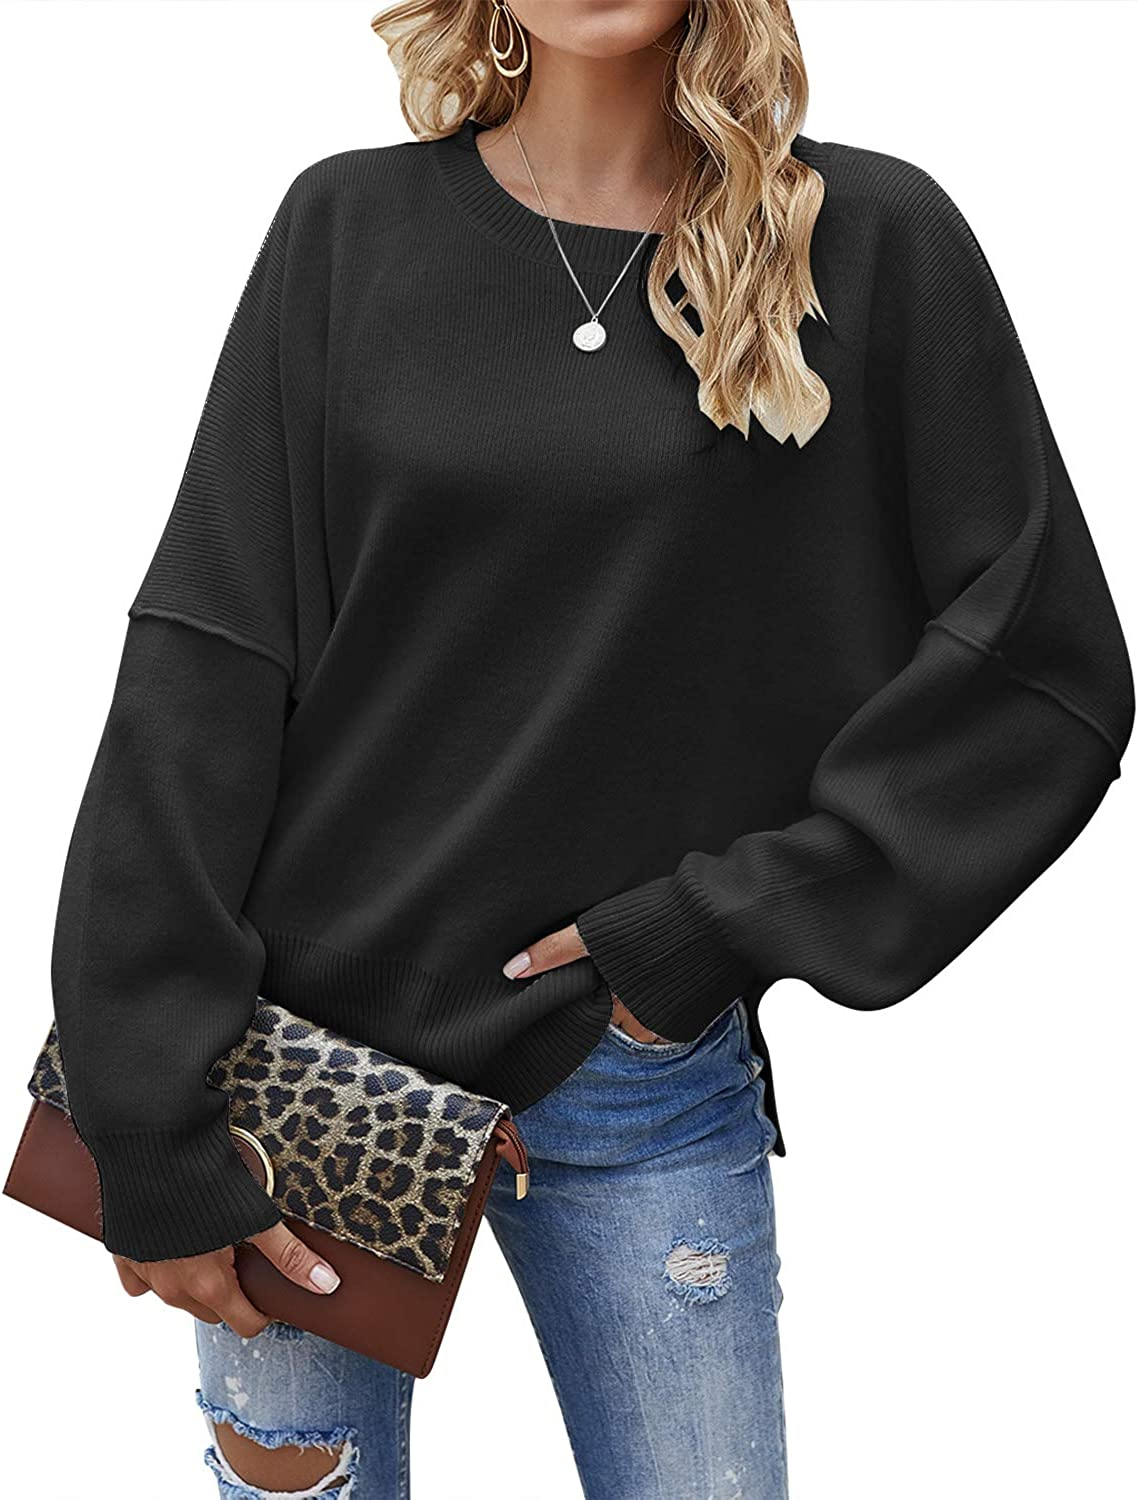 Jacansi Women's Casual Crew Neck Pullover Sweater Side Split Loose Long Sleeve Knit Sweaters Jumper Tops